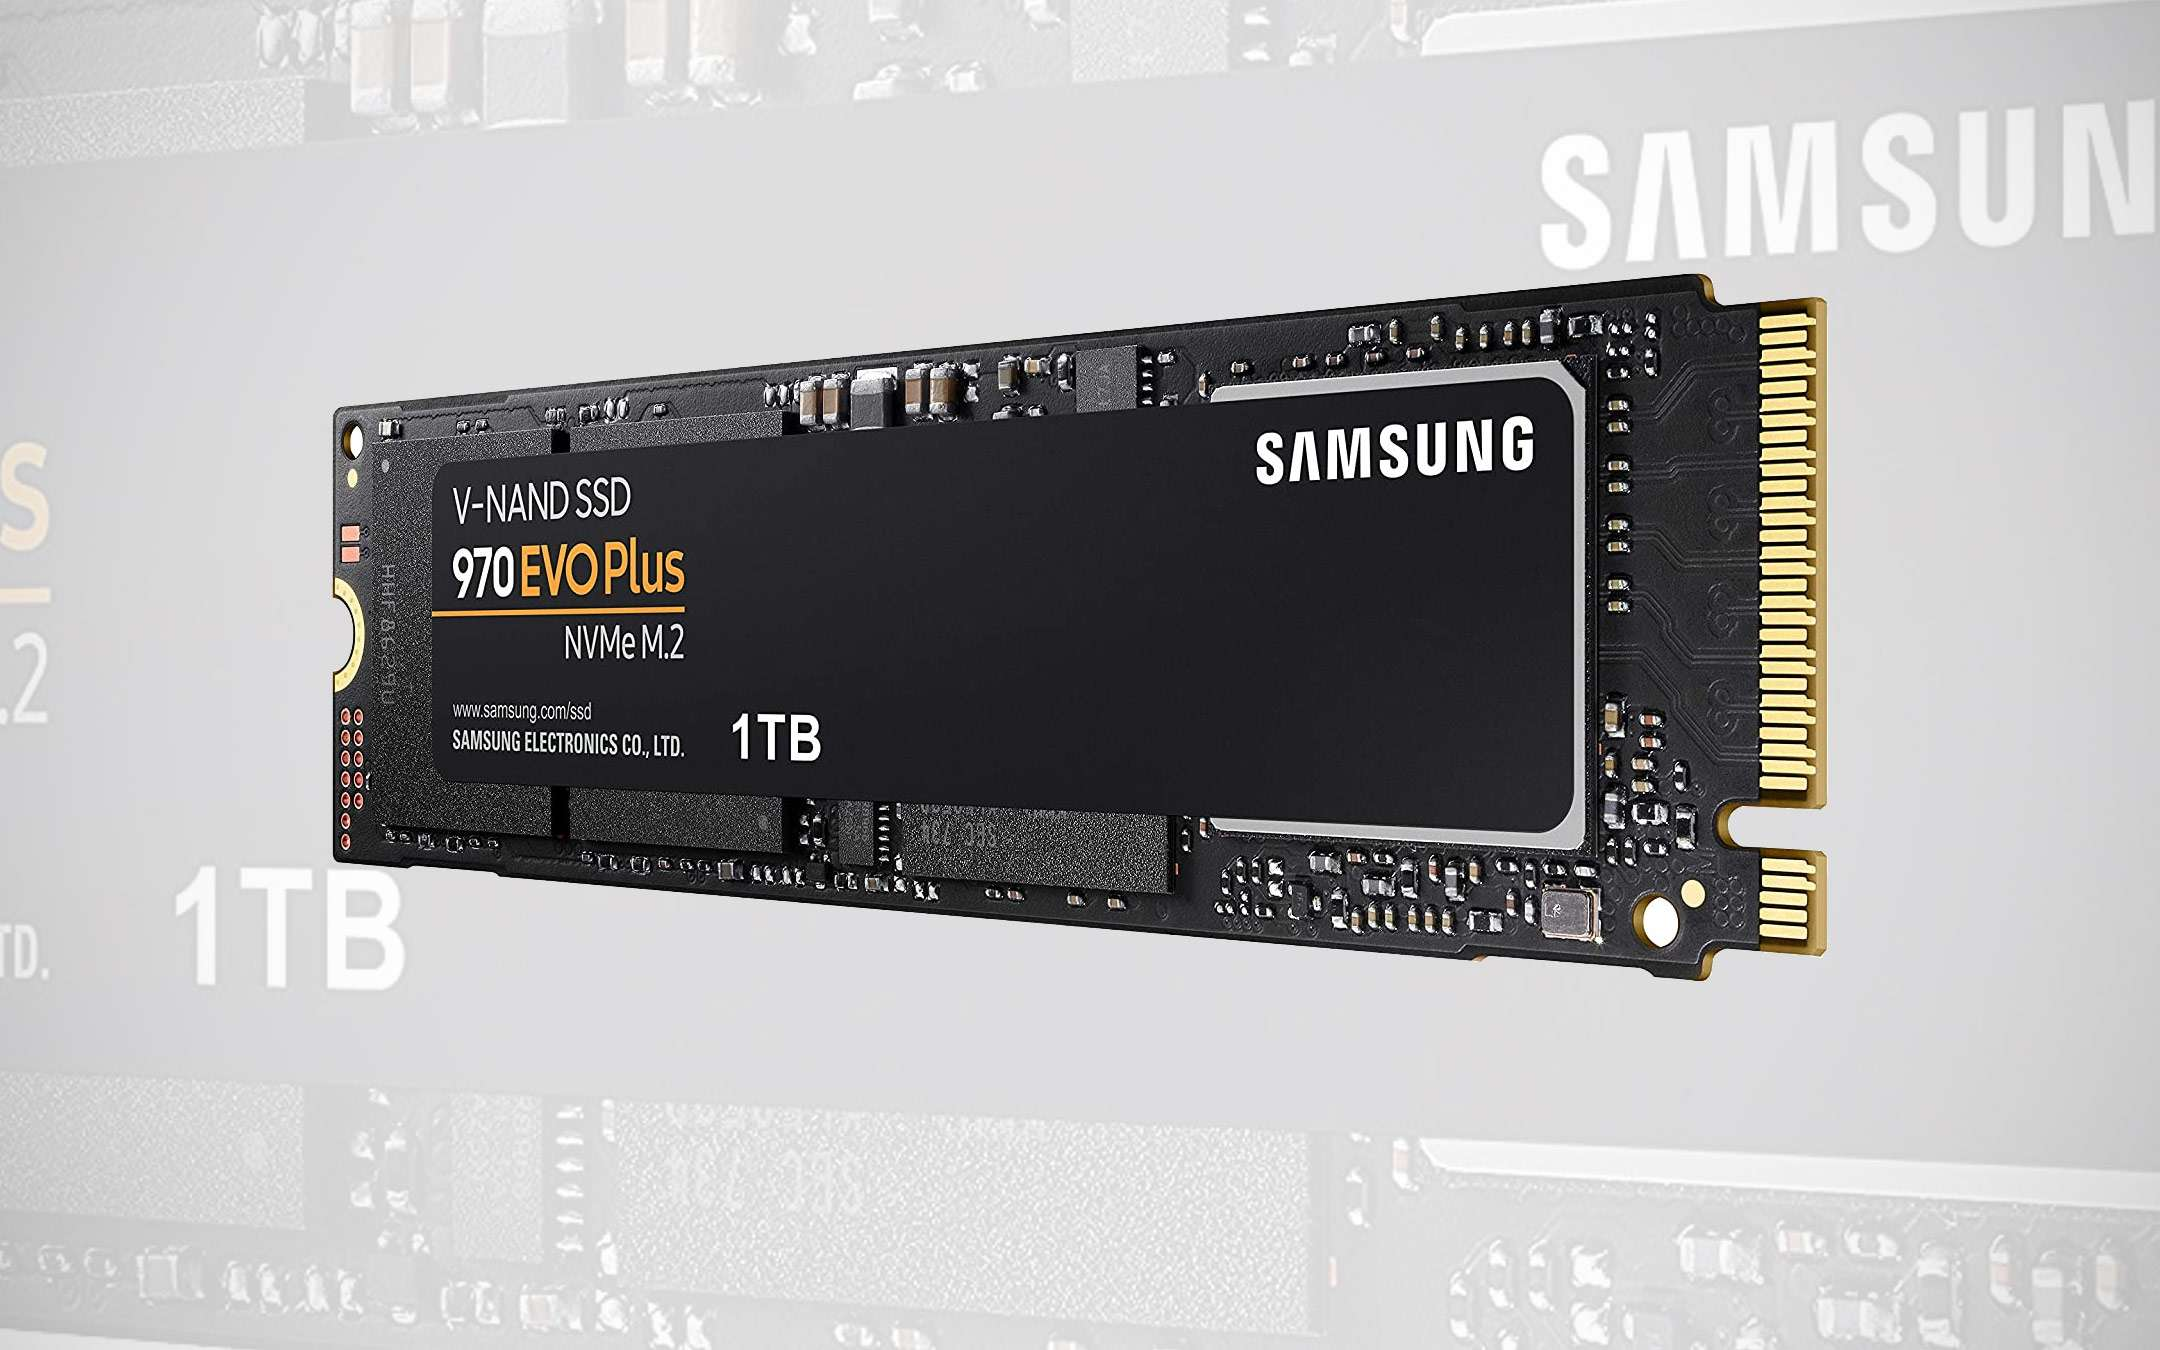 Samsung 970 EVO Plus: 1 TB SSD at a 52% discount